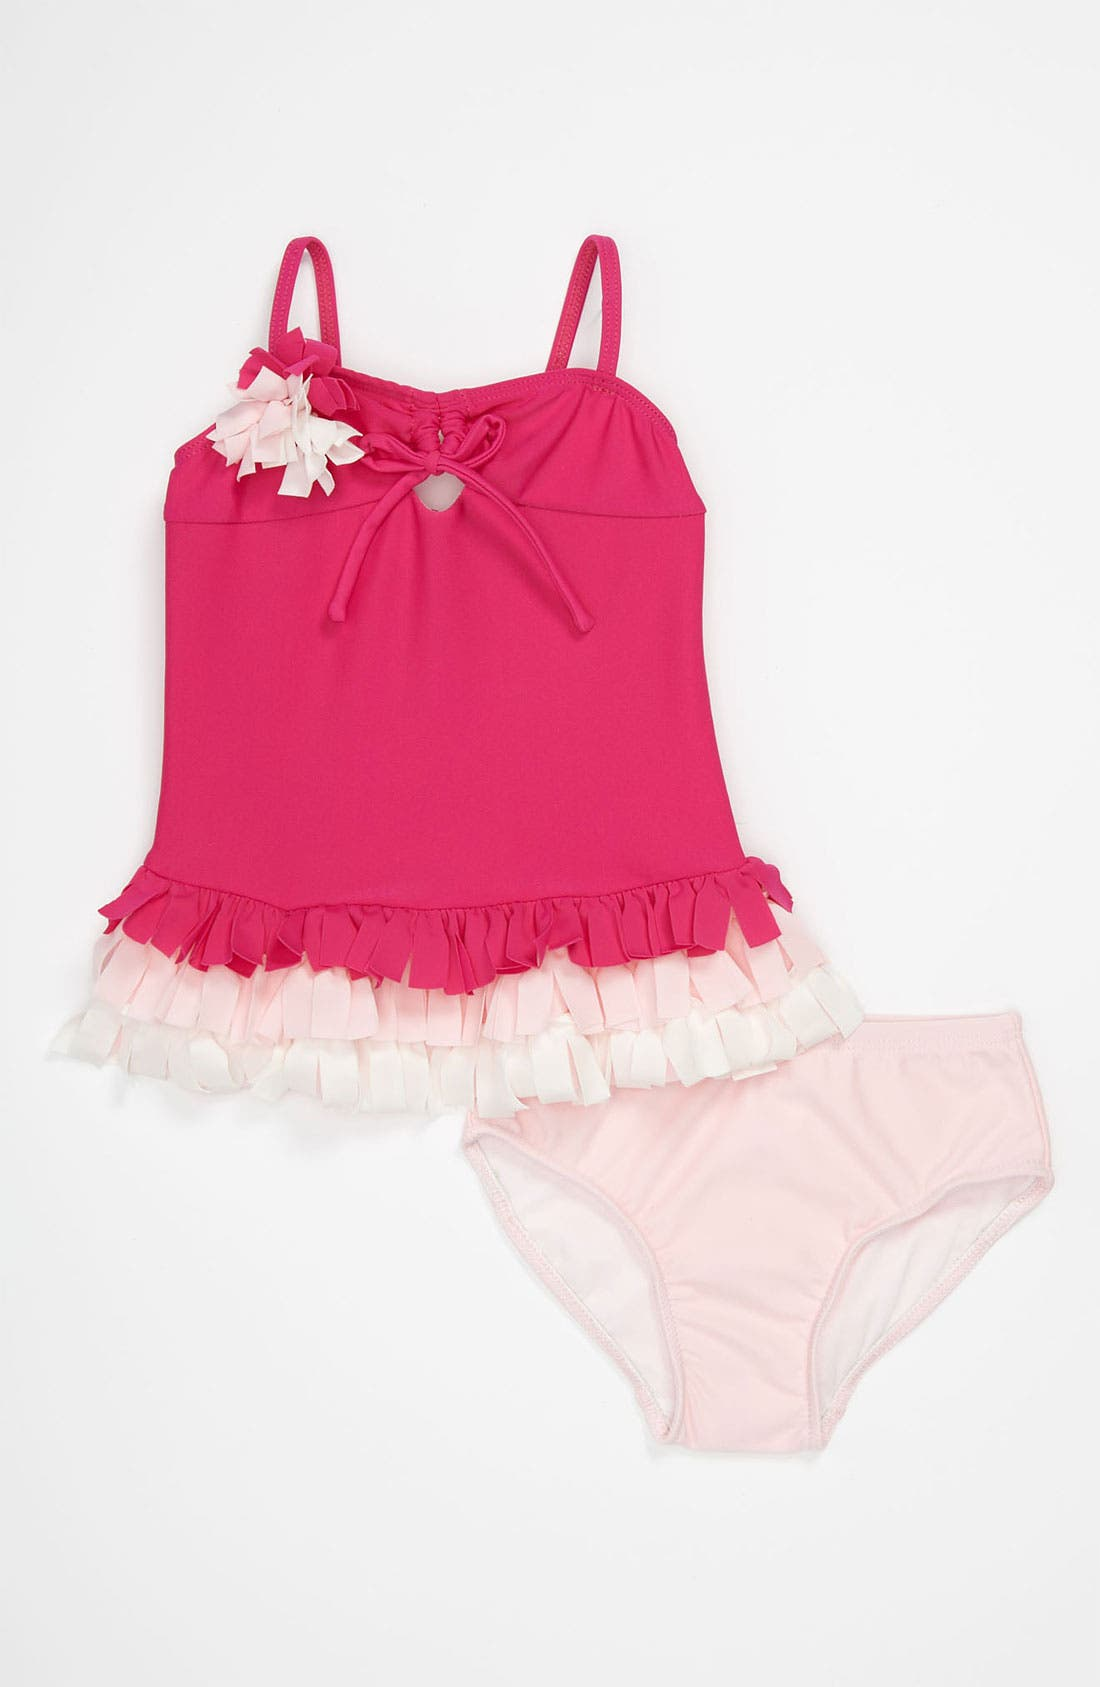 Main Image - Isobella & Chloe Two Piece Swimsuit (Baby)